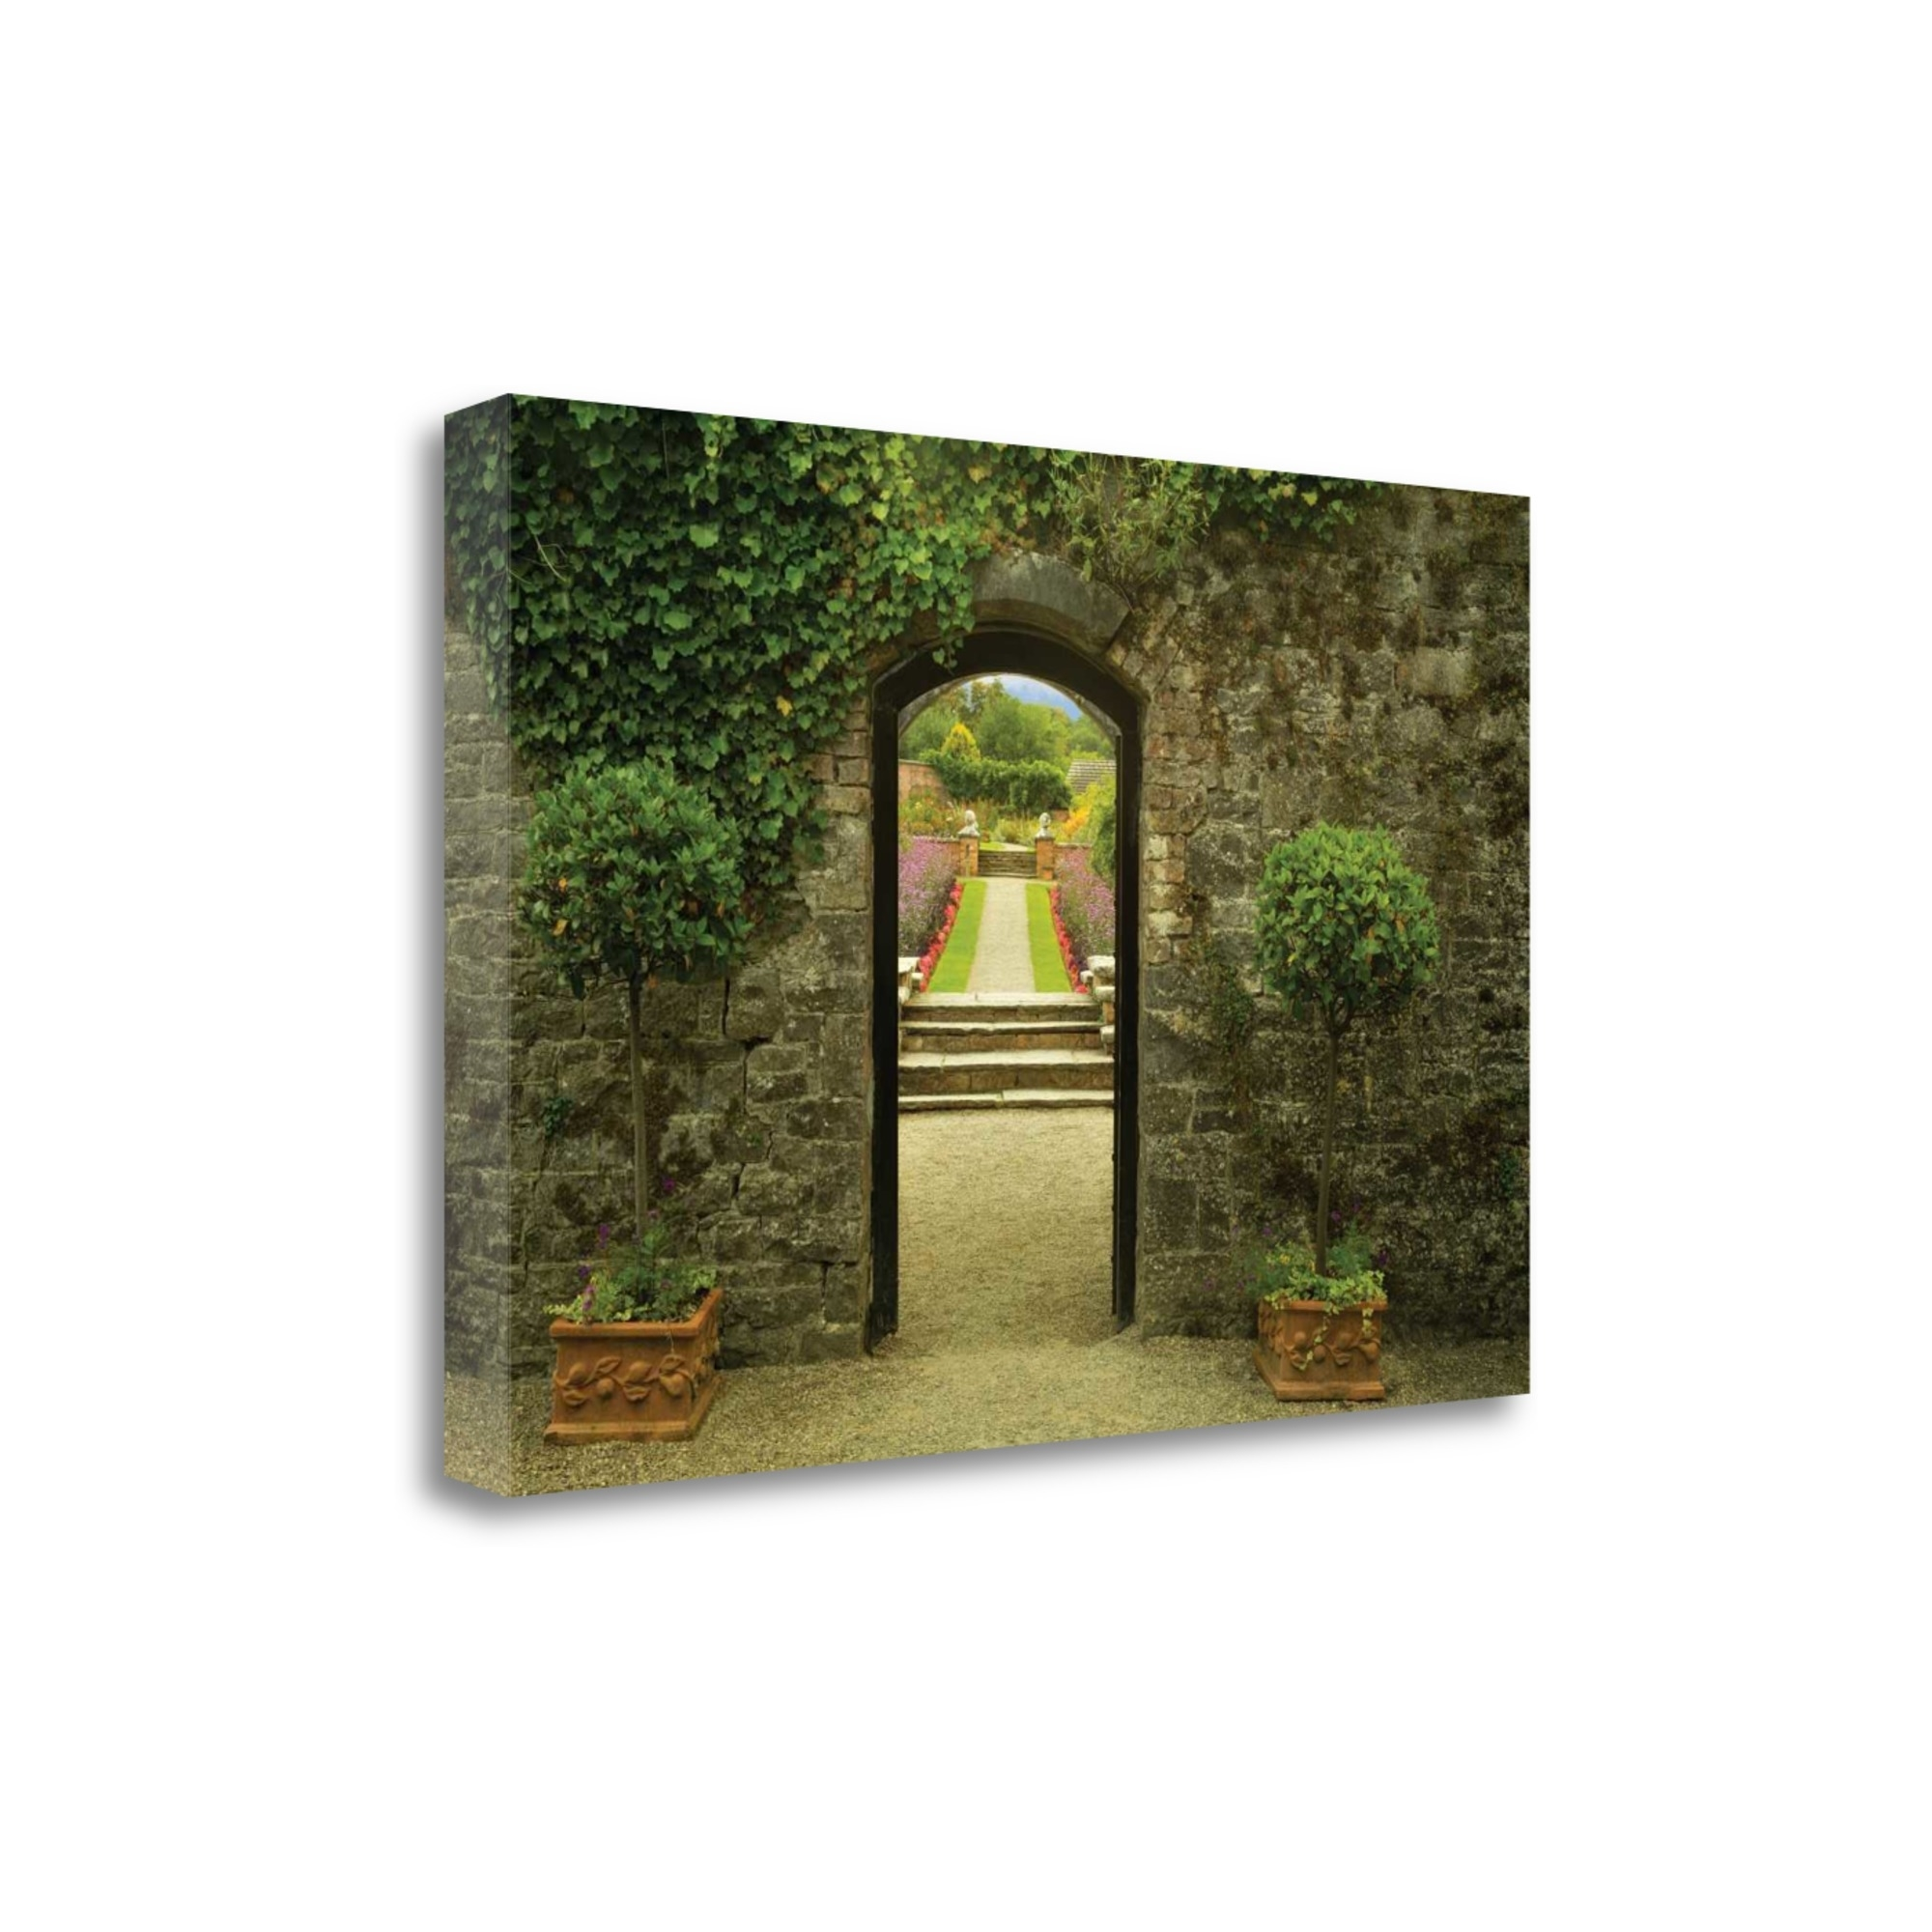 "Garden Arch By Dennis Frates, 39"" x 26\"" Fine Art Giclee Print on Gallery Wrap Canvas, Ready to Hang"